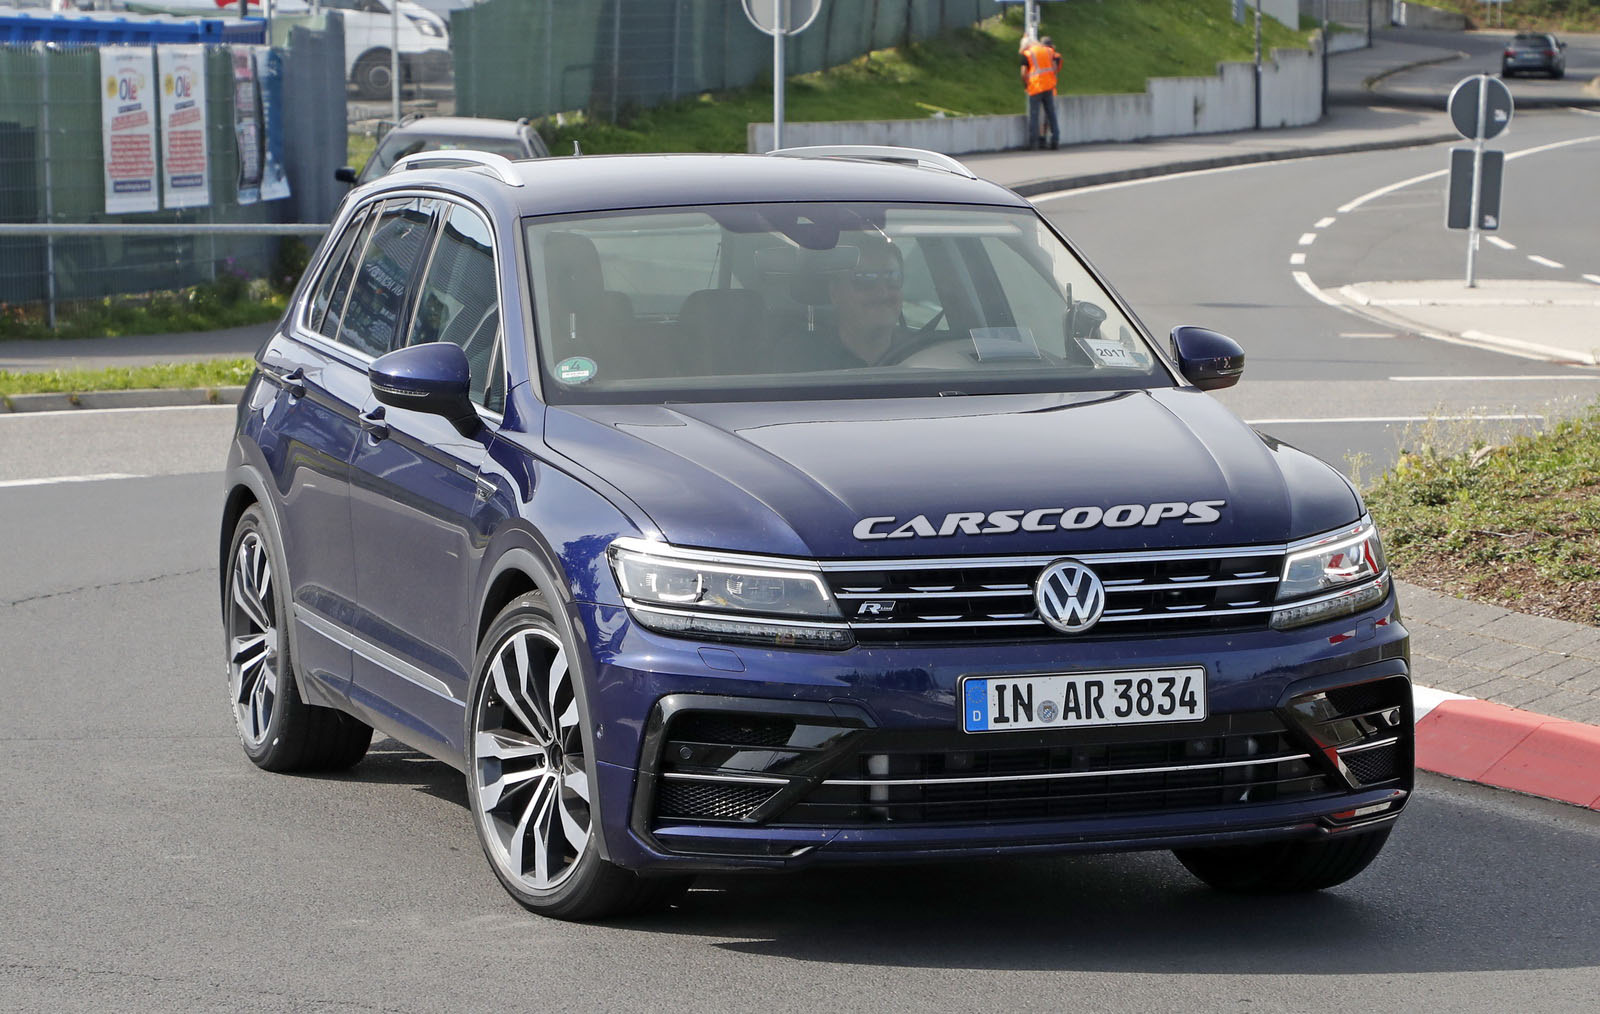 vw tiguan r test car spotted again but it s not what it looks like. Black Bedroom Furniture Sets. Home Design Ideas